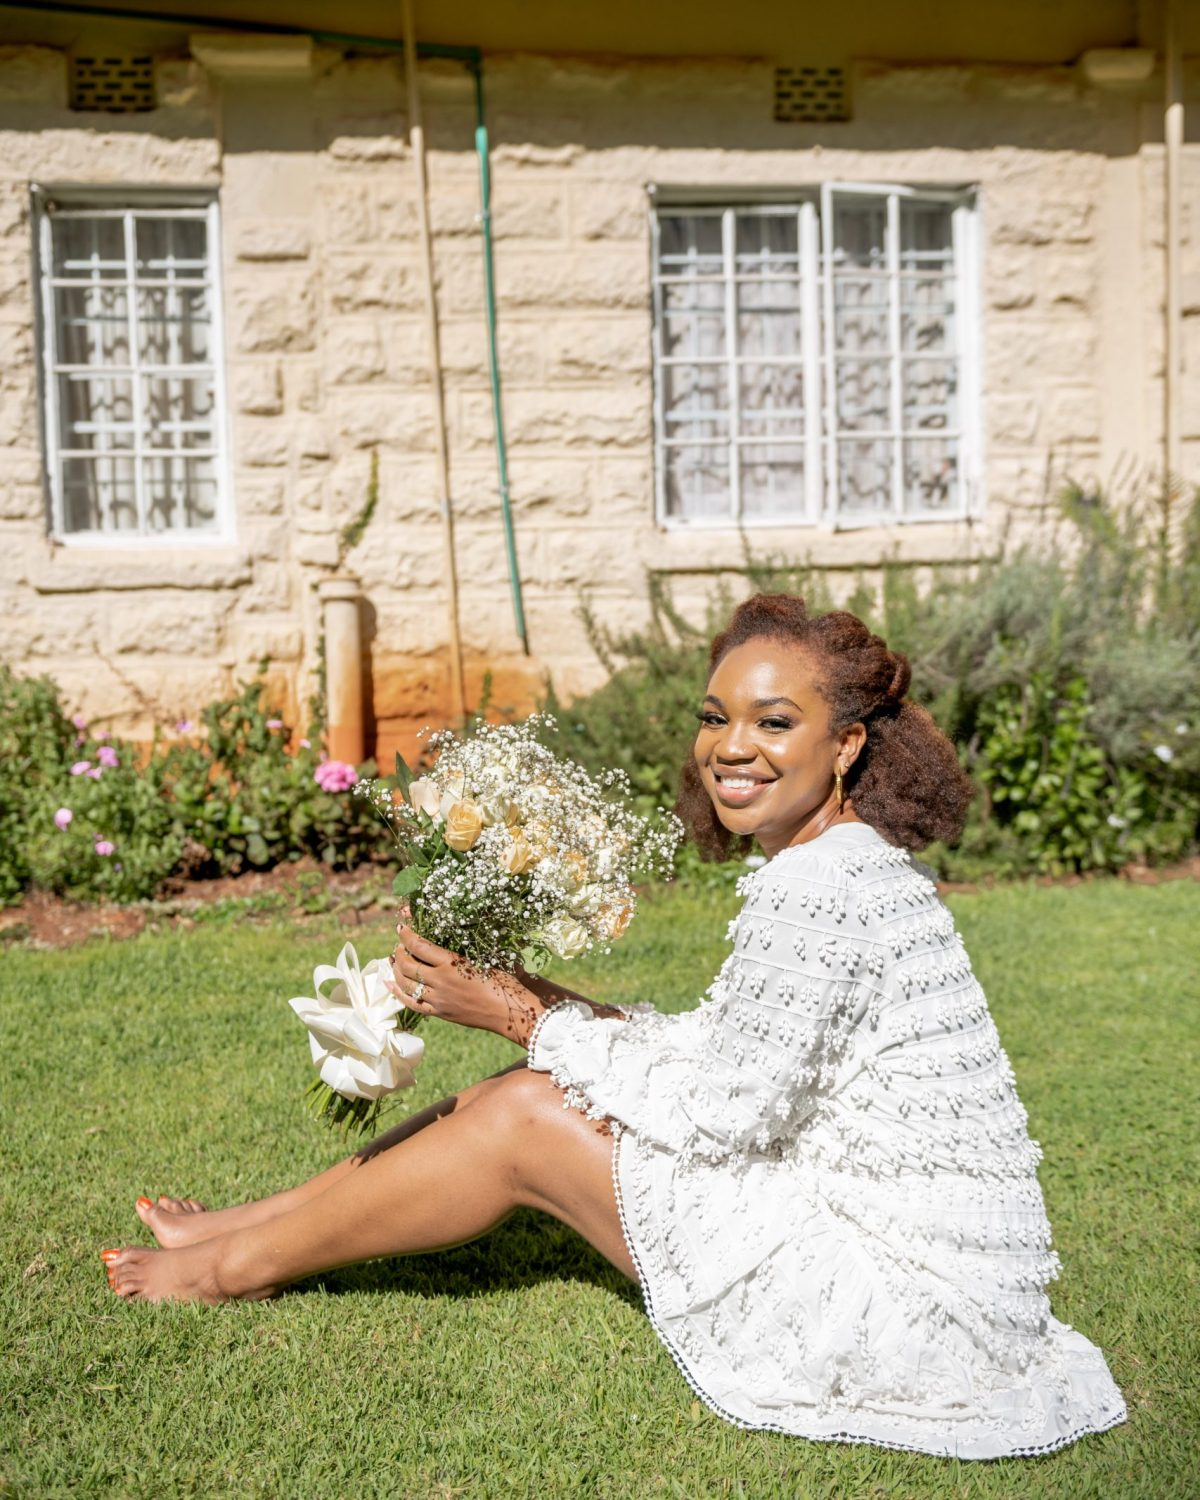 Ijeoma Kola sitting on grass in a white dress in front of a house